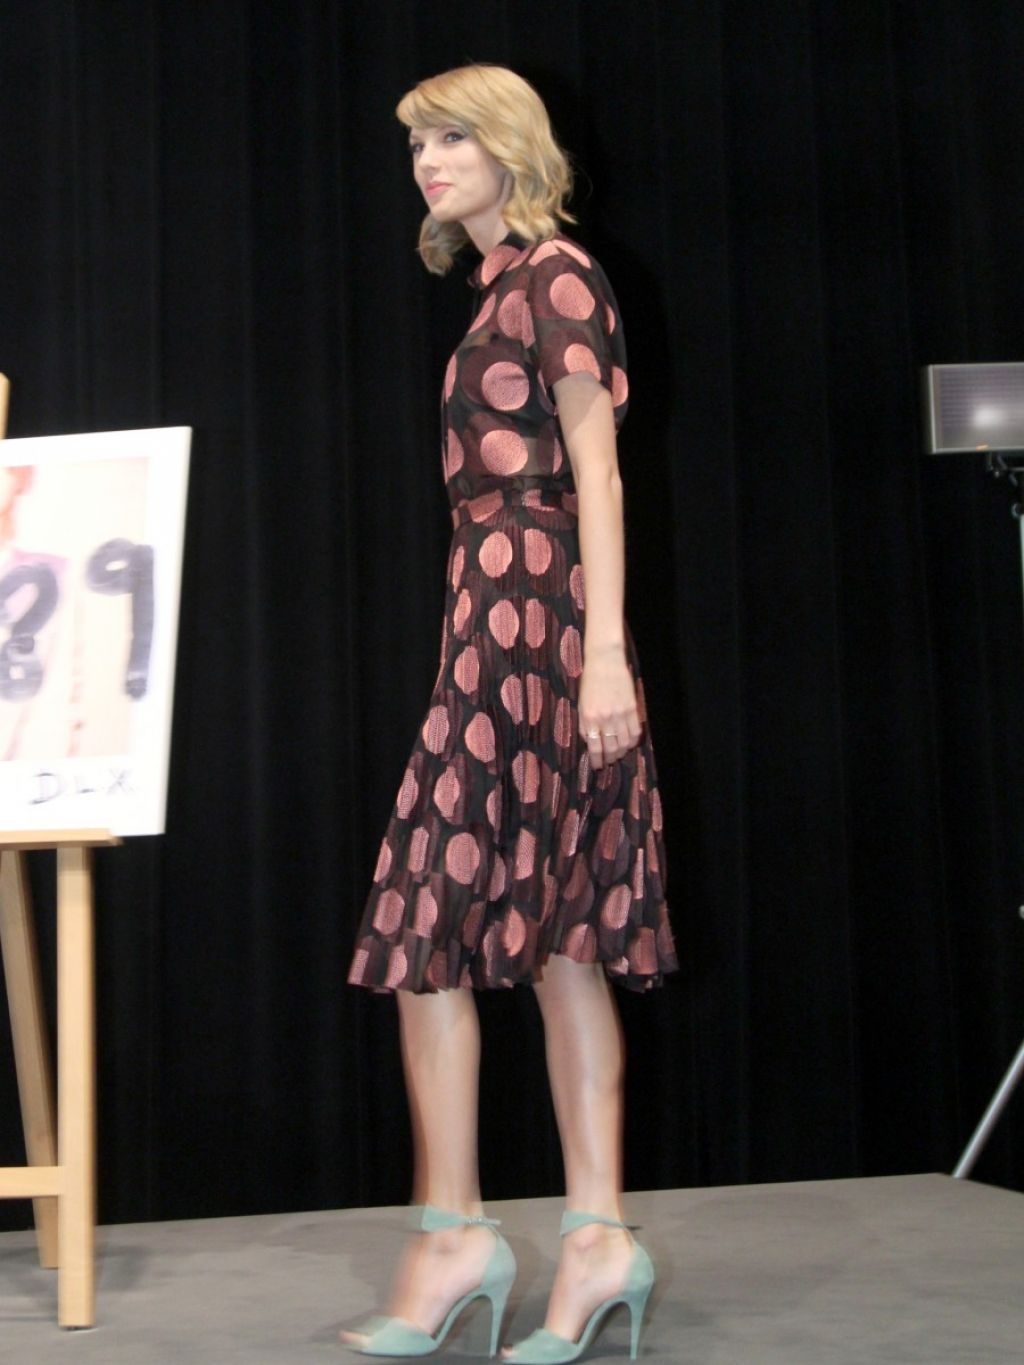 taylor-swift-1989-album-tokyo-press-conference-in-japan_6-1